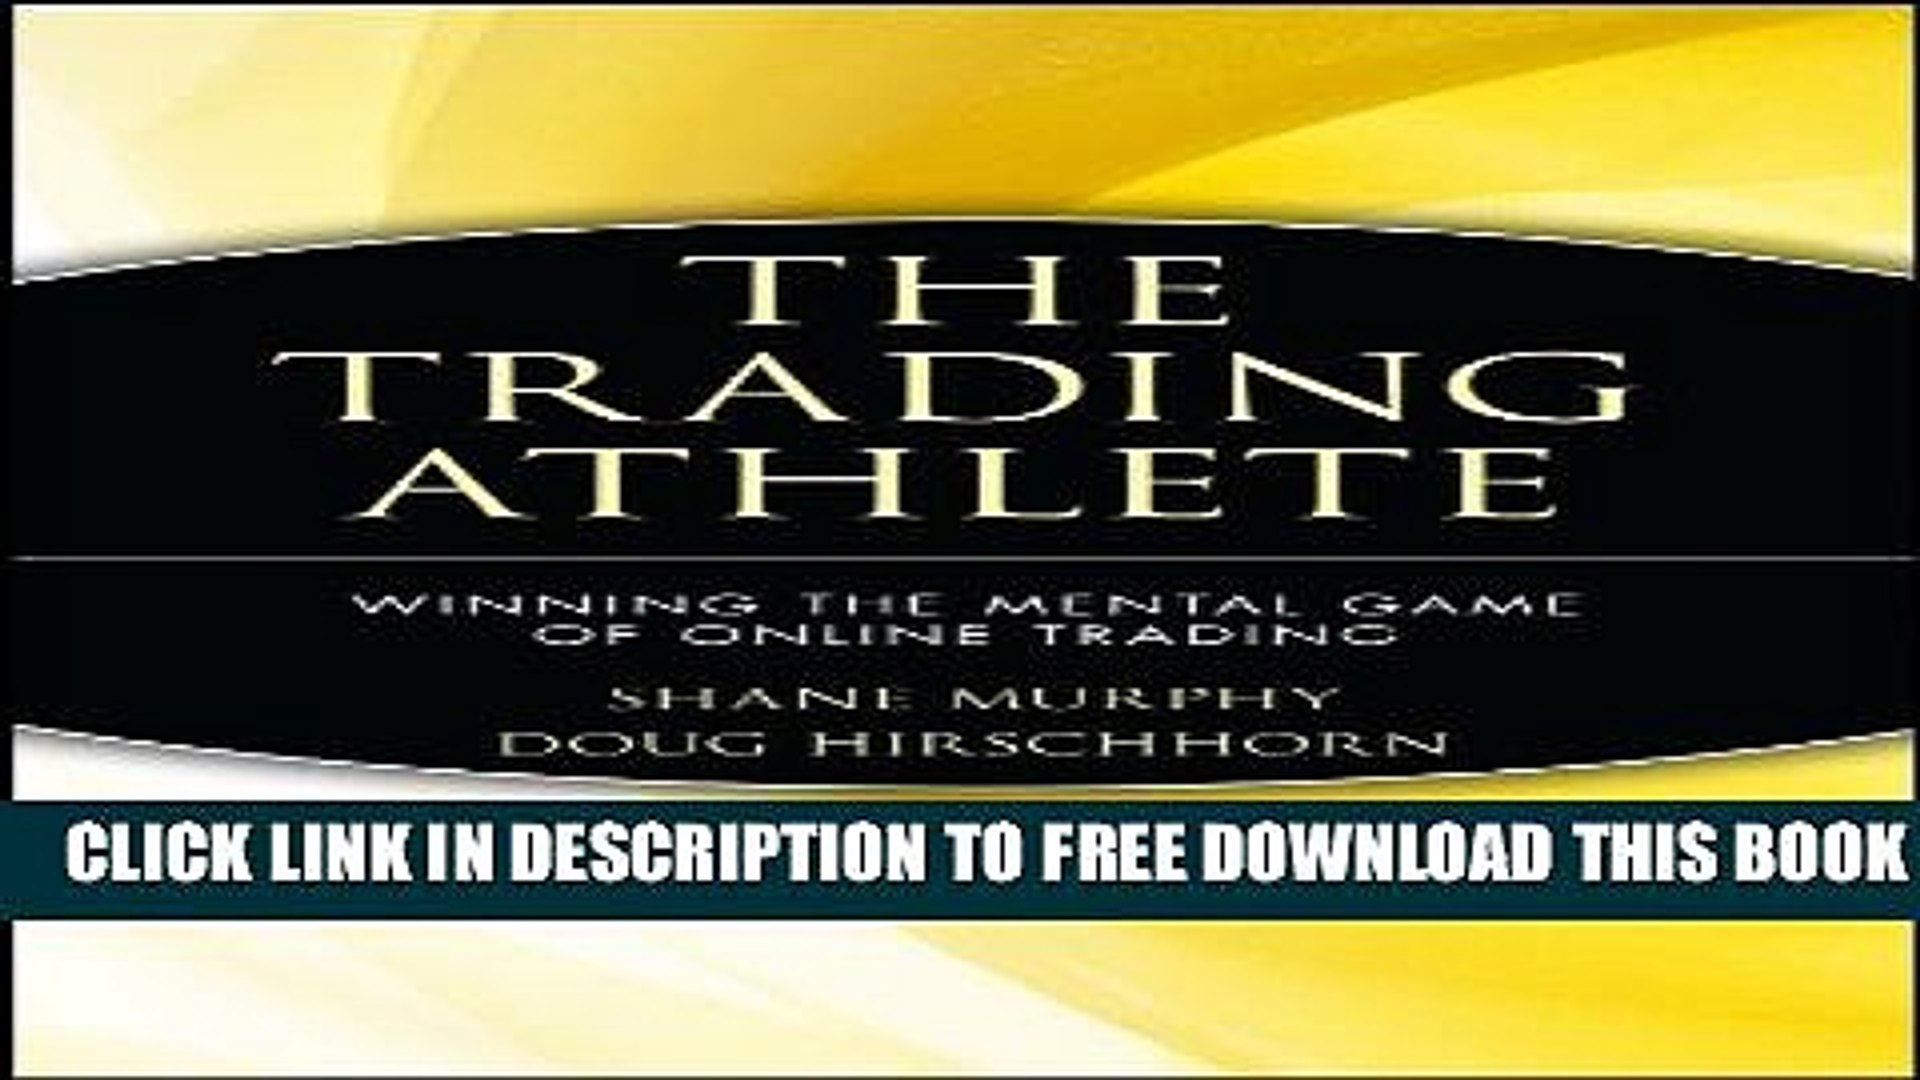 Collection Book The Trading Athlete: Winning the Mental Game of Online Trading